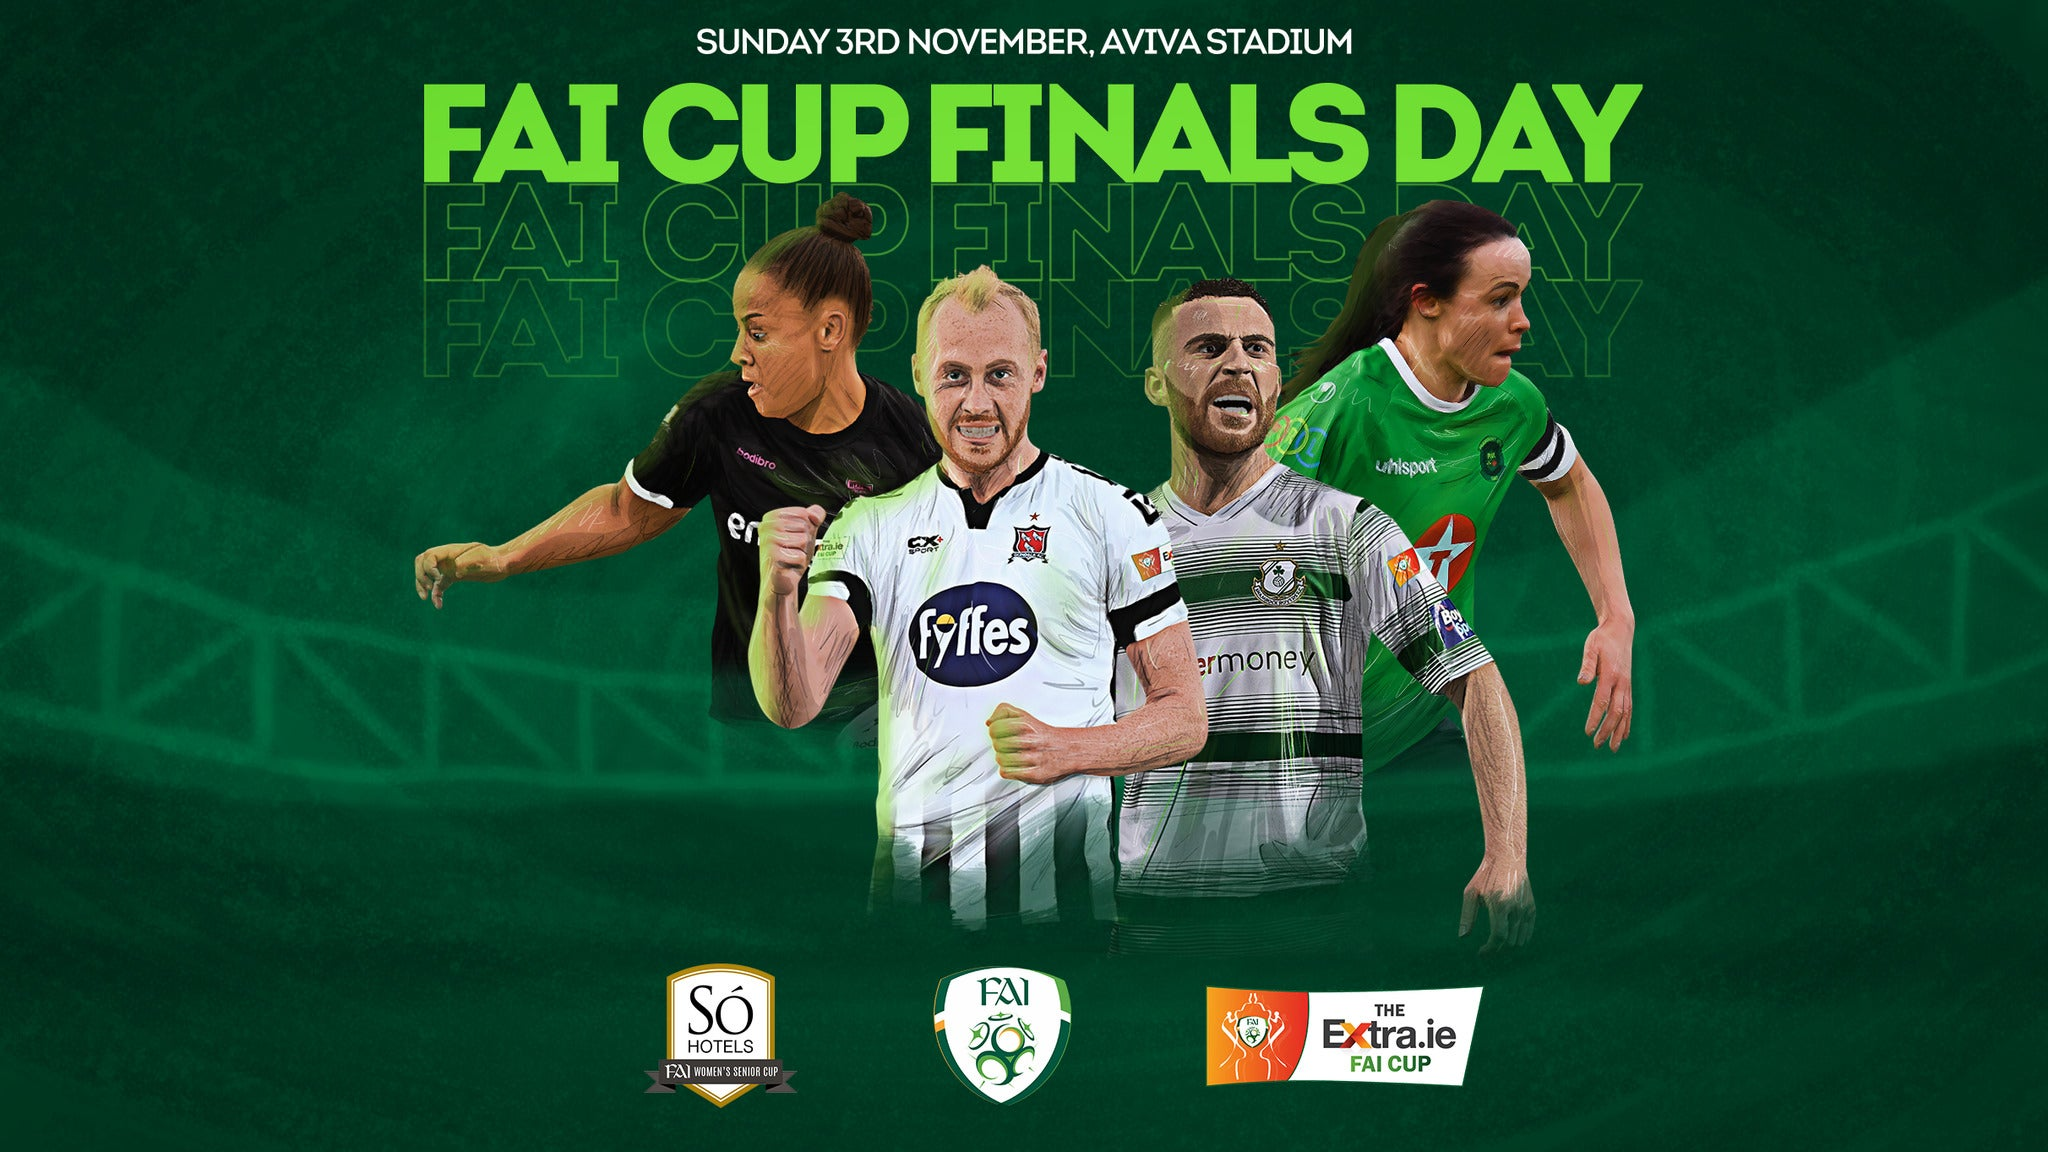 FAI Cup Finals Day - Dundalk/Shamrock Rovers & Peamount/Wexford Youths Aviva Stadium Seating Plan